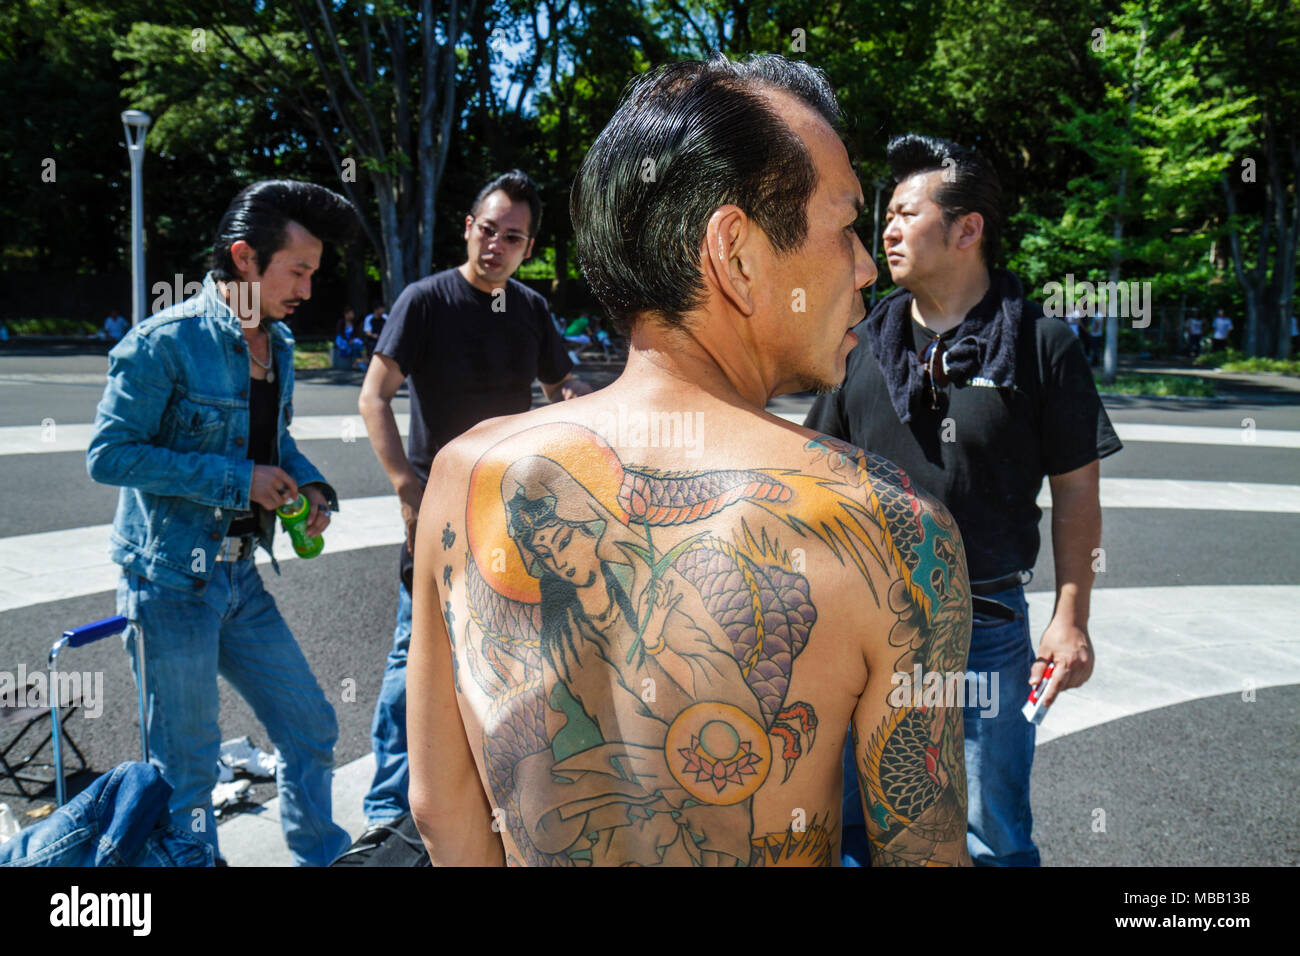 Asian gang tattoo